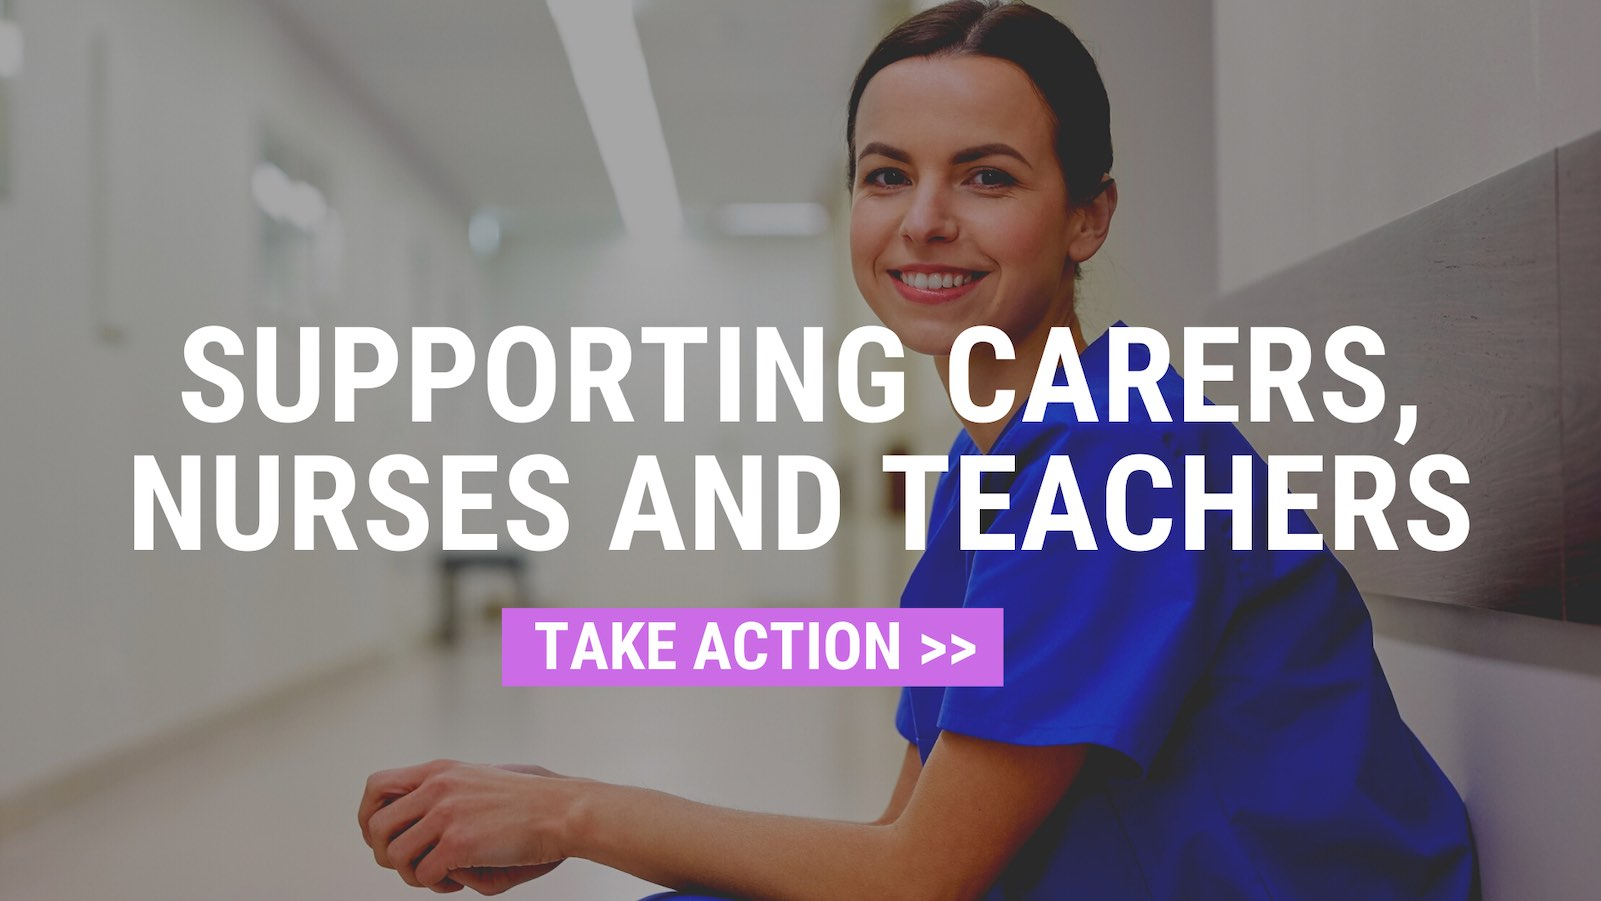 Supporting carers, nurses and teachers